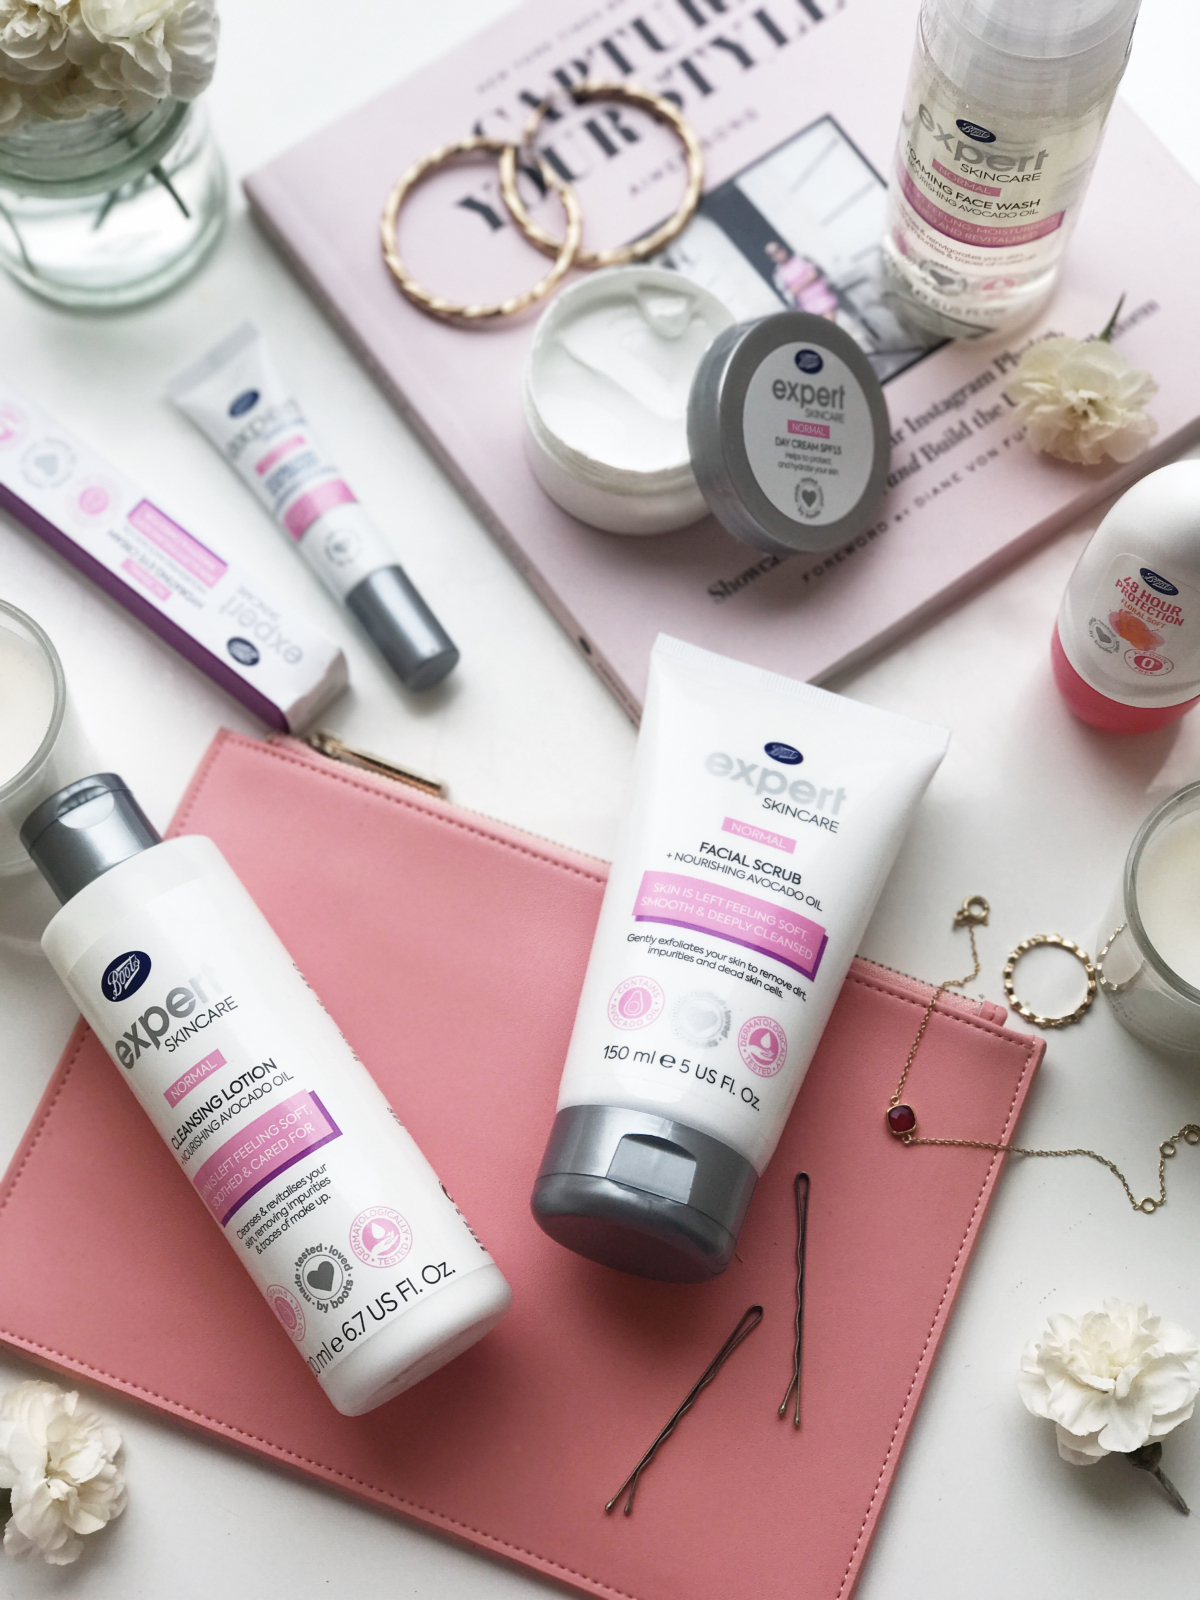 Boots Own Brand Skincare Review